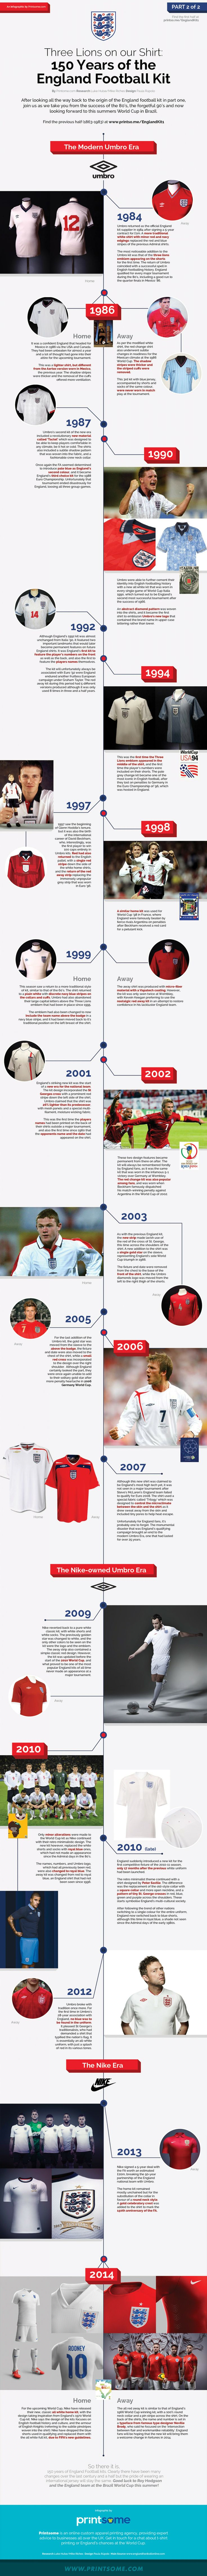 150 Years of the England Football kit in preparation for the 2014 World Cup in Brazil